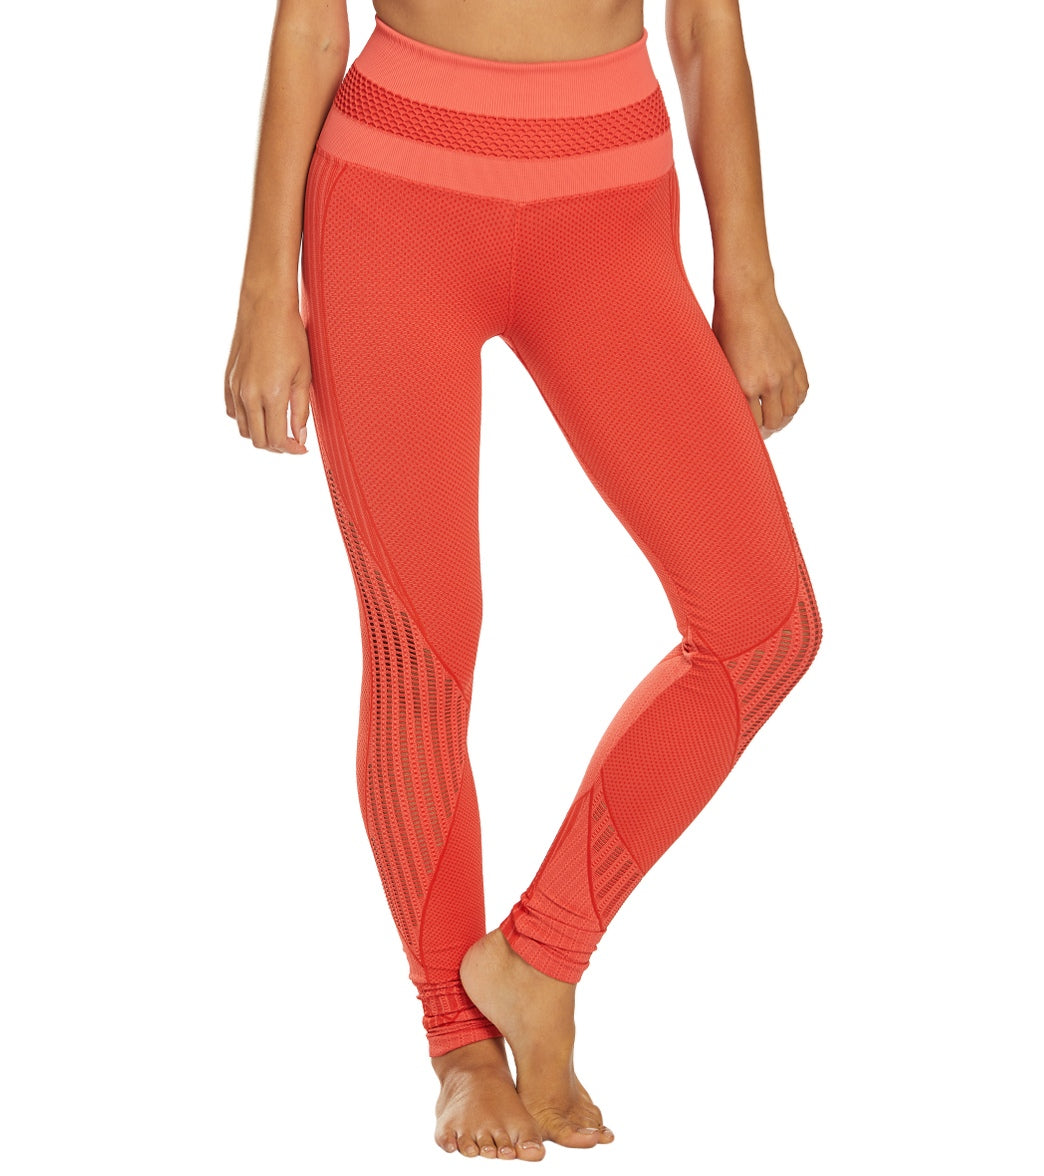 NUX Get Shredded High Waisted Seamless Yoga Leggings - Poppy Spandex